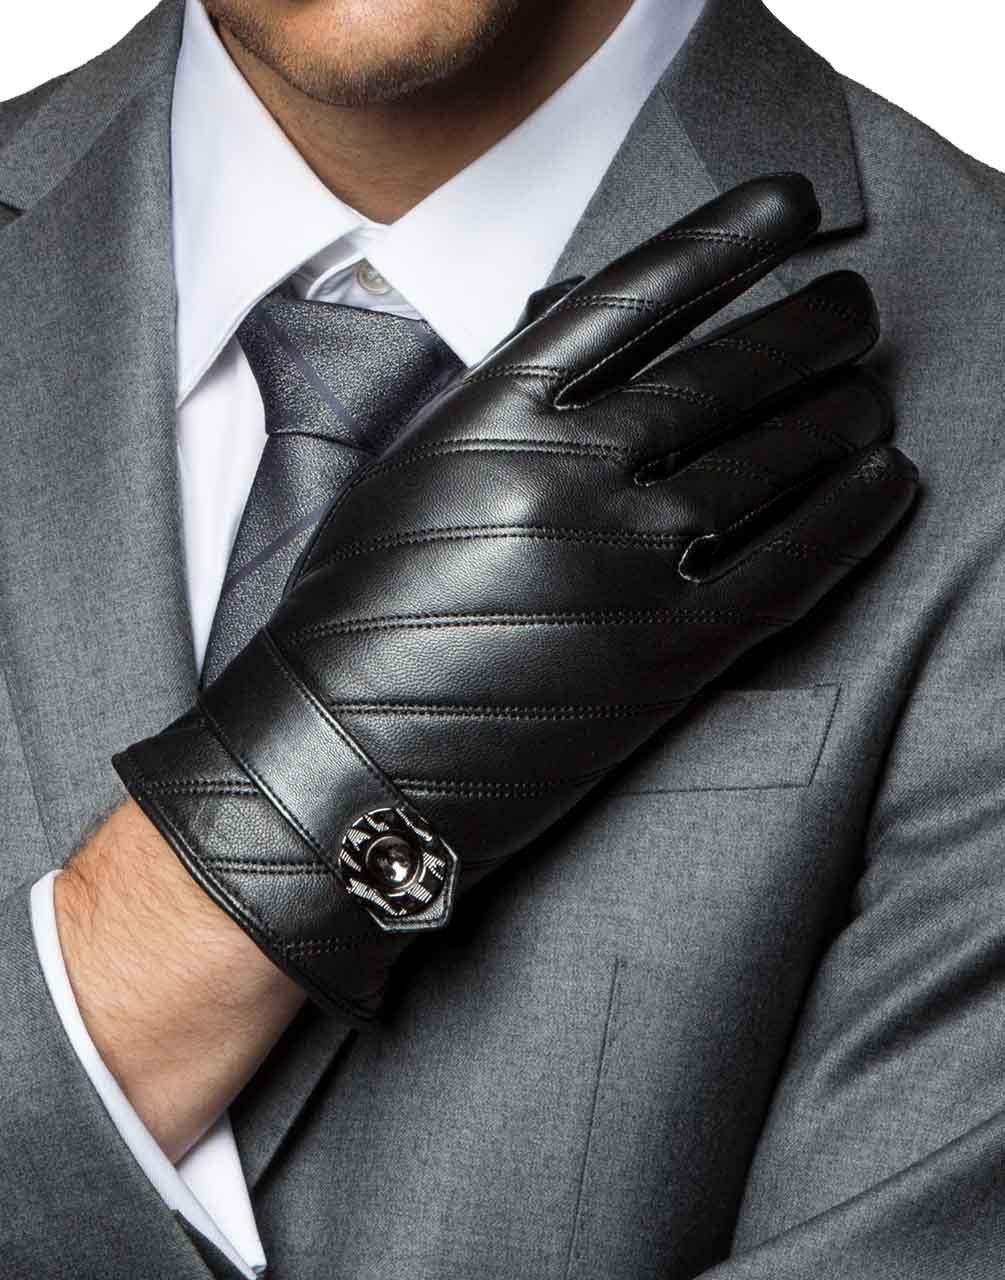 YISEVEN Men's Touchscreen Lambskin Leather Gloves Fleece Lined Diagonal Stripe and Button Belt Luxury Stylish for Winter Hand Warm Fur Lined and Motorcycle Driving Christmas Xmas Gift, Black 11''/XXXL by YISEVEN (Image #3)